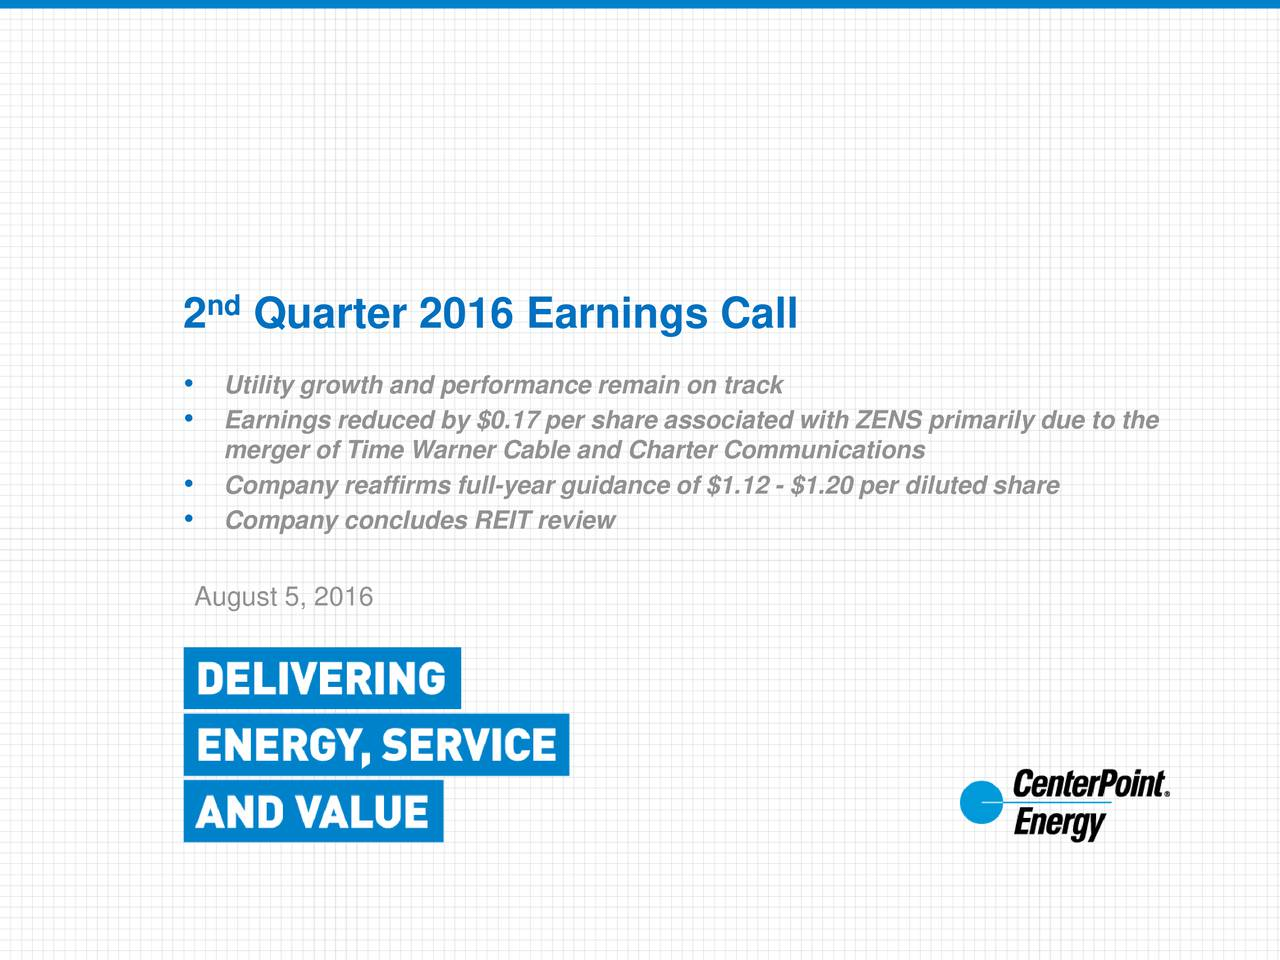 2 Quarter 2016 Earnings Call Utility growth and performance remain on track Earnings reduced by $0.17 per share associated with ZENS primarily due to the merger of Time Warner Cable and Charter Communications Company reaffirms full-year guidance of $1.12 - $1.20 per diluted share Company concludes REIT review August 5, 2016 investors.centerpointenergy.com